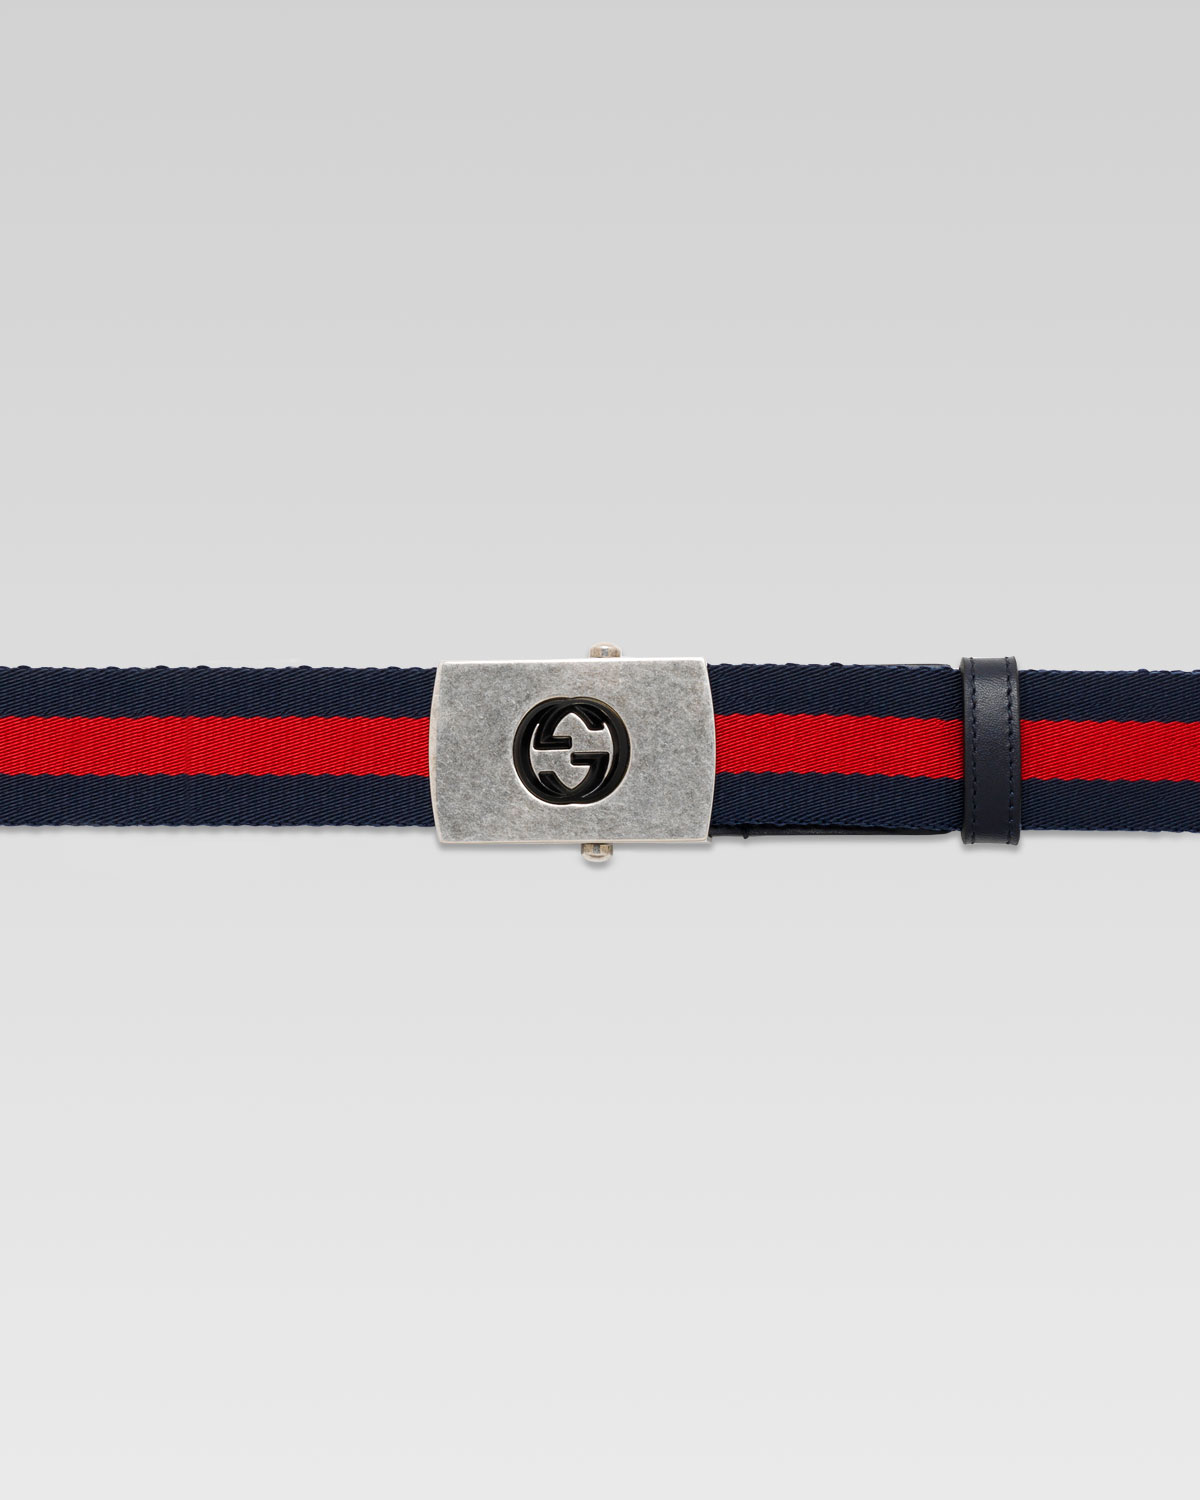 fbdcff0c2 Gucci Nylon Web Belt with Plaque Buckle, Blue/Red/Blue | Neiman Marcus